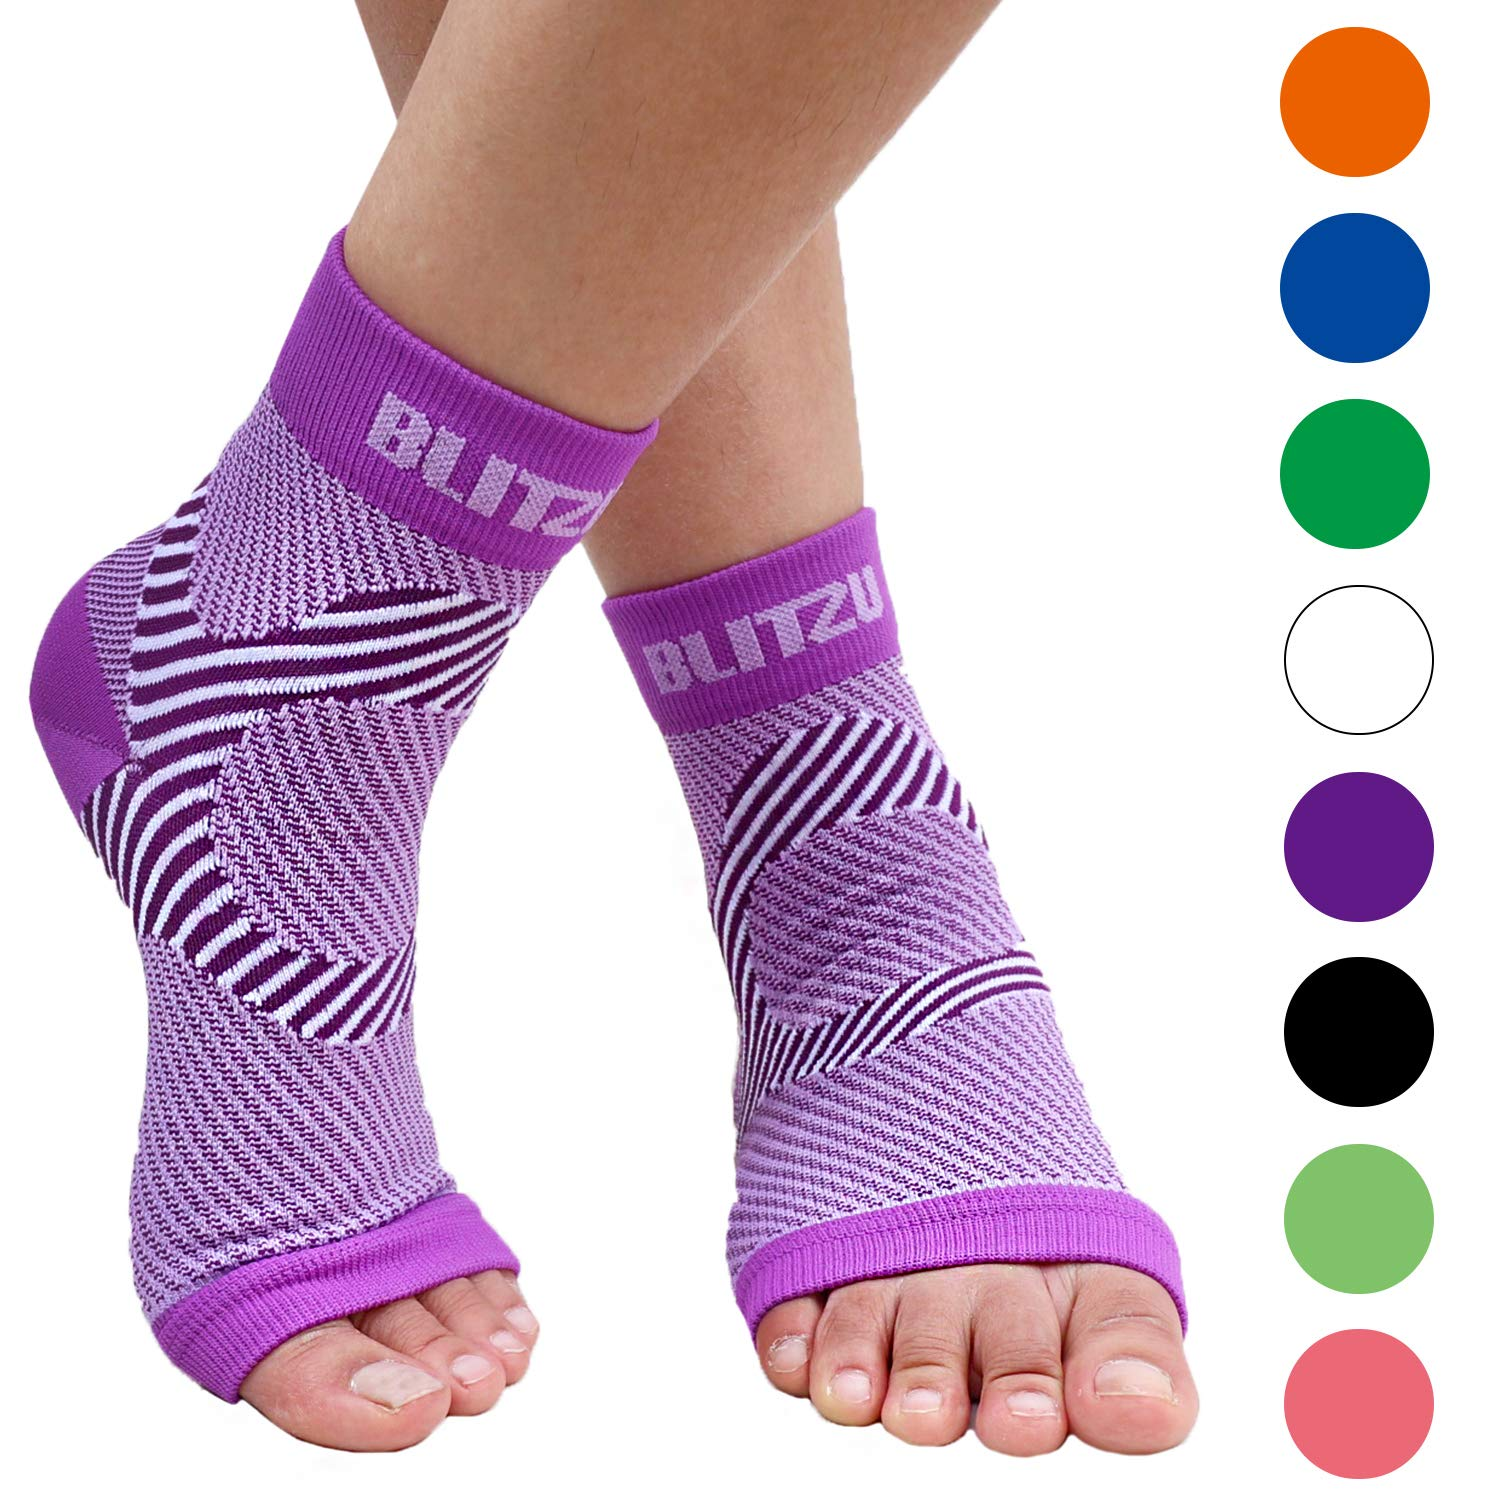 Fasciitis Compression Swelling Increases Circulation